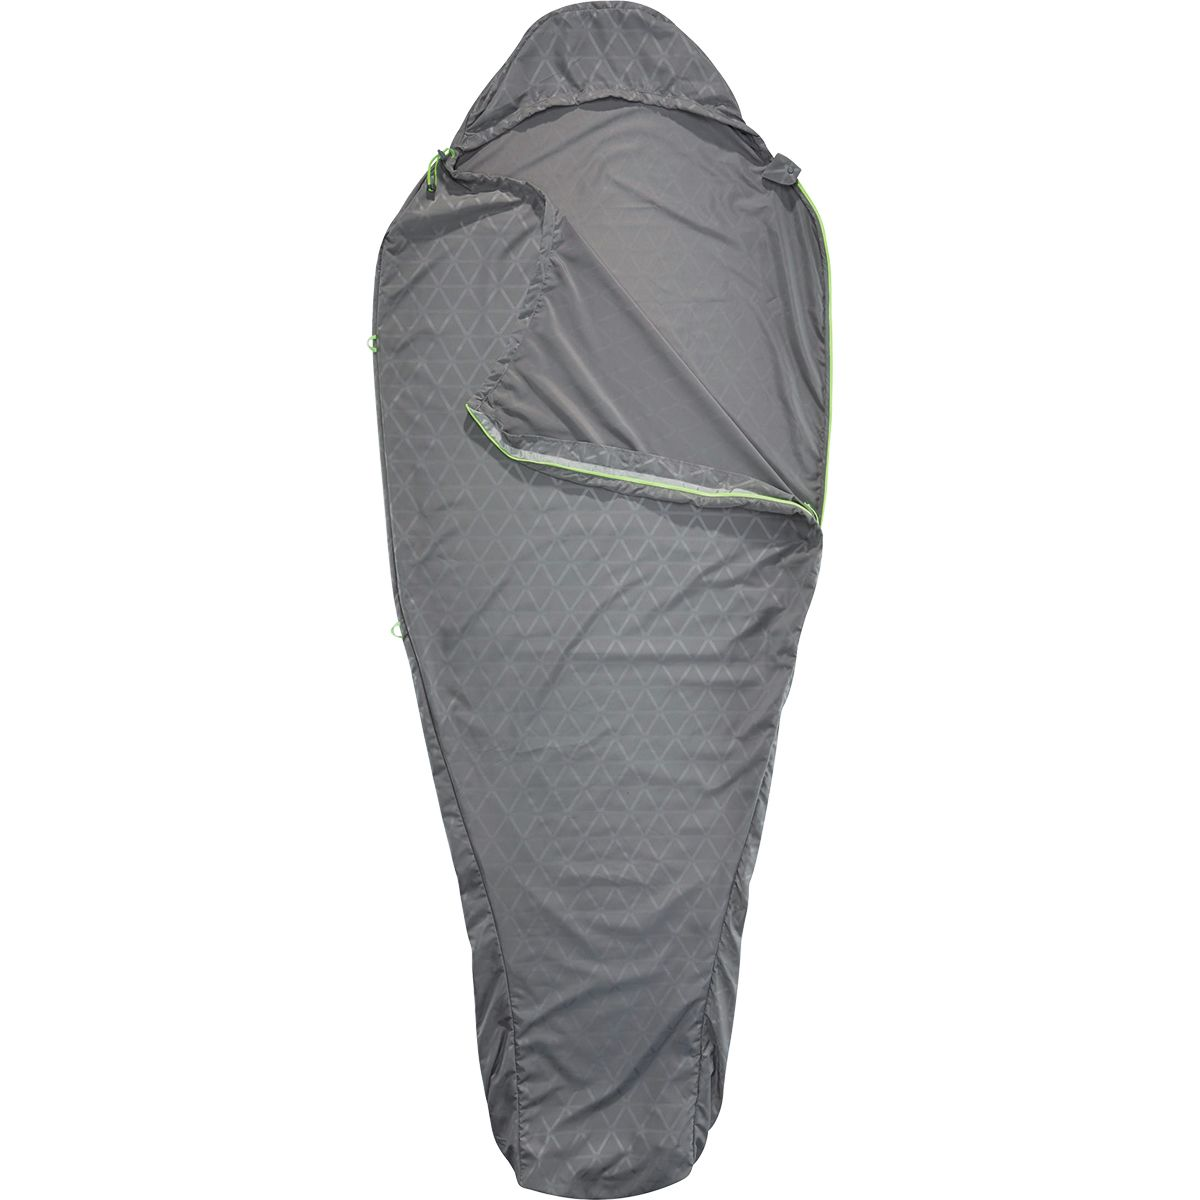 Therm-A-Rest Sleeping Bag Liner